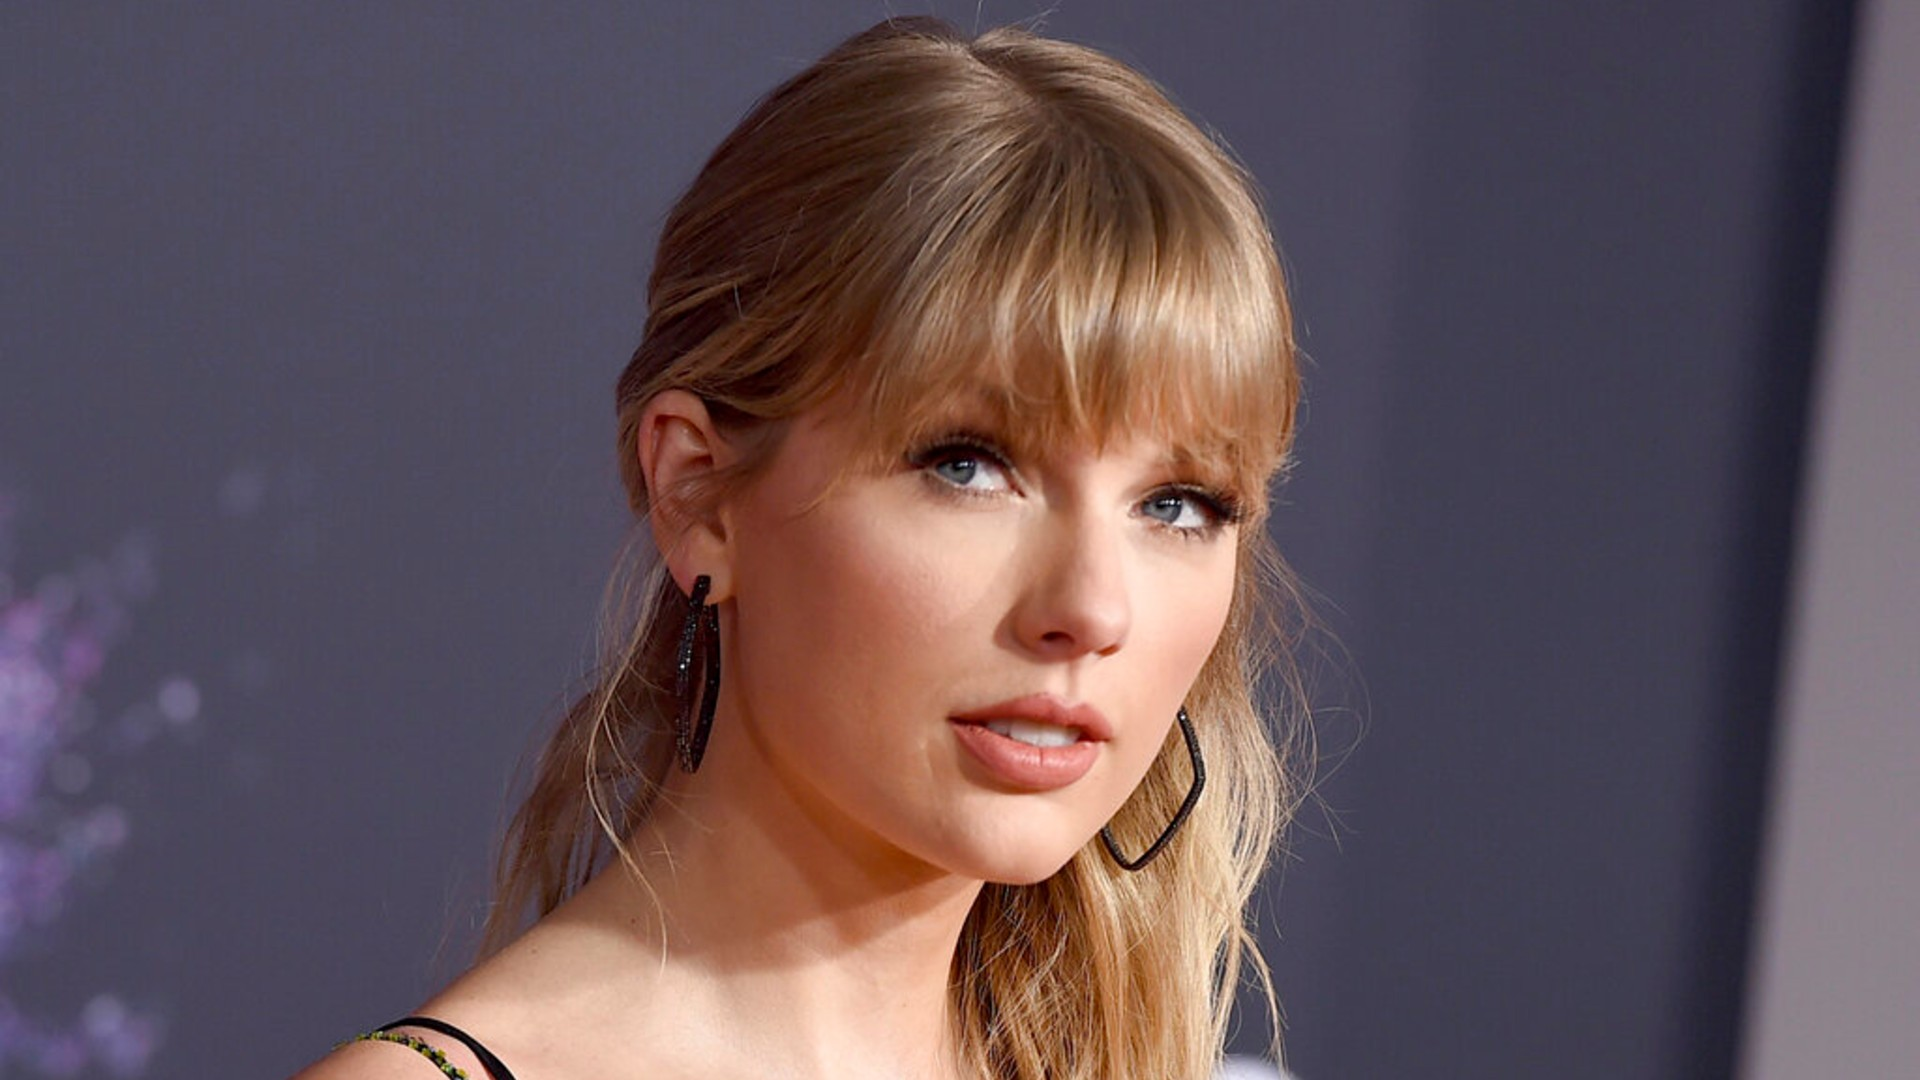 This Nov. 24, 2019 file photo shows Taylor Swift at the American Music Awards in Los Angeles. (Photo by Jordan Strauss/Invision/AP, File)